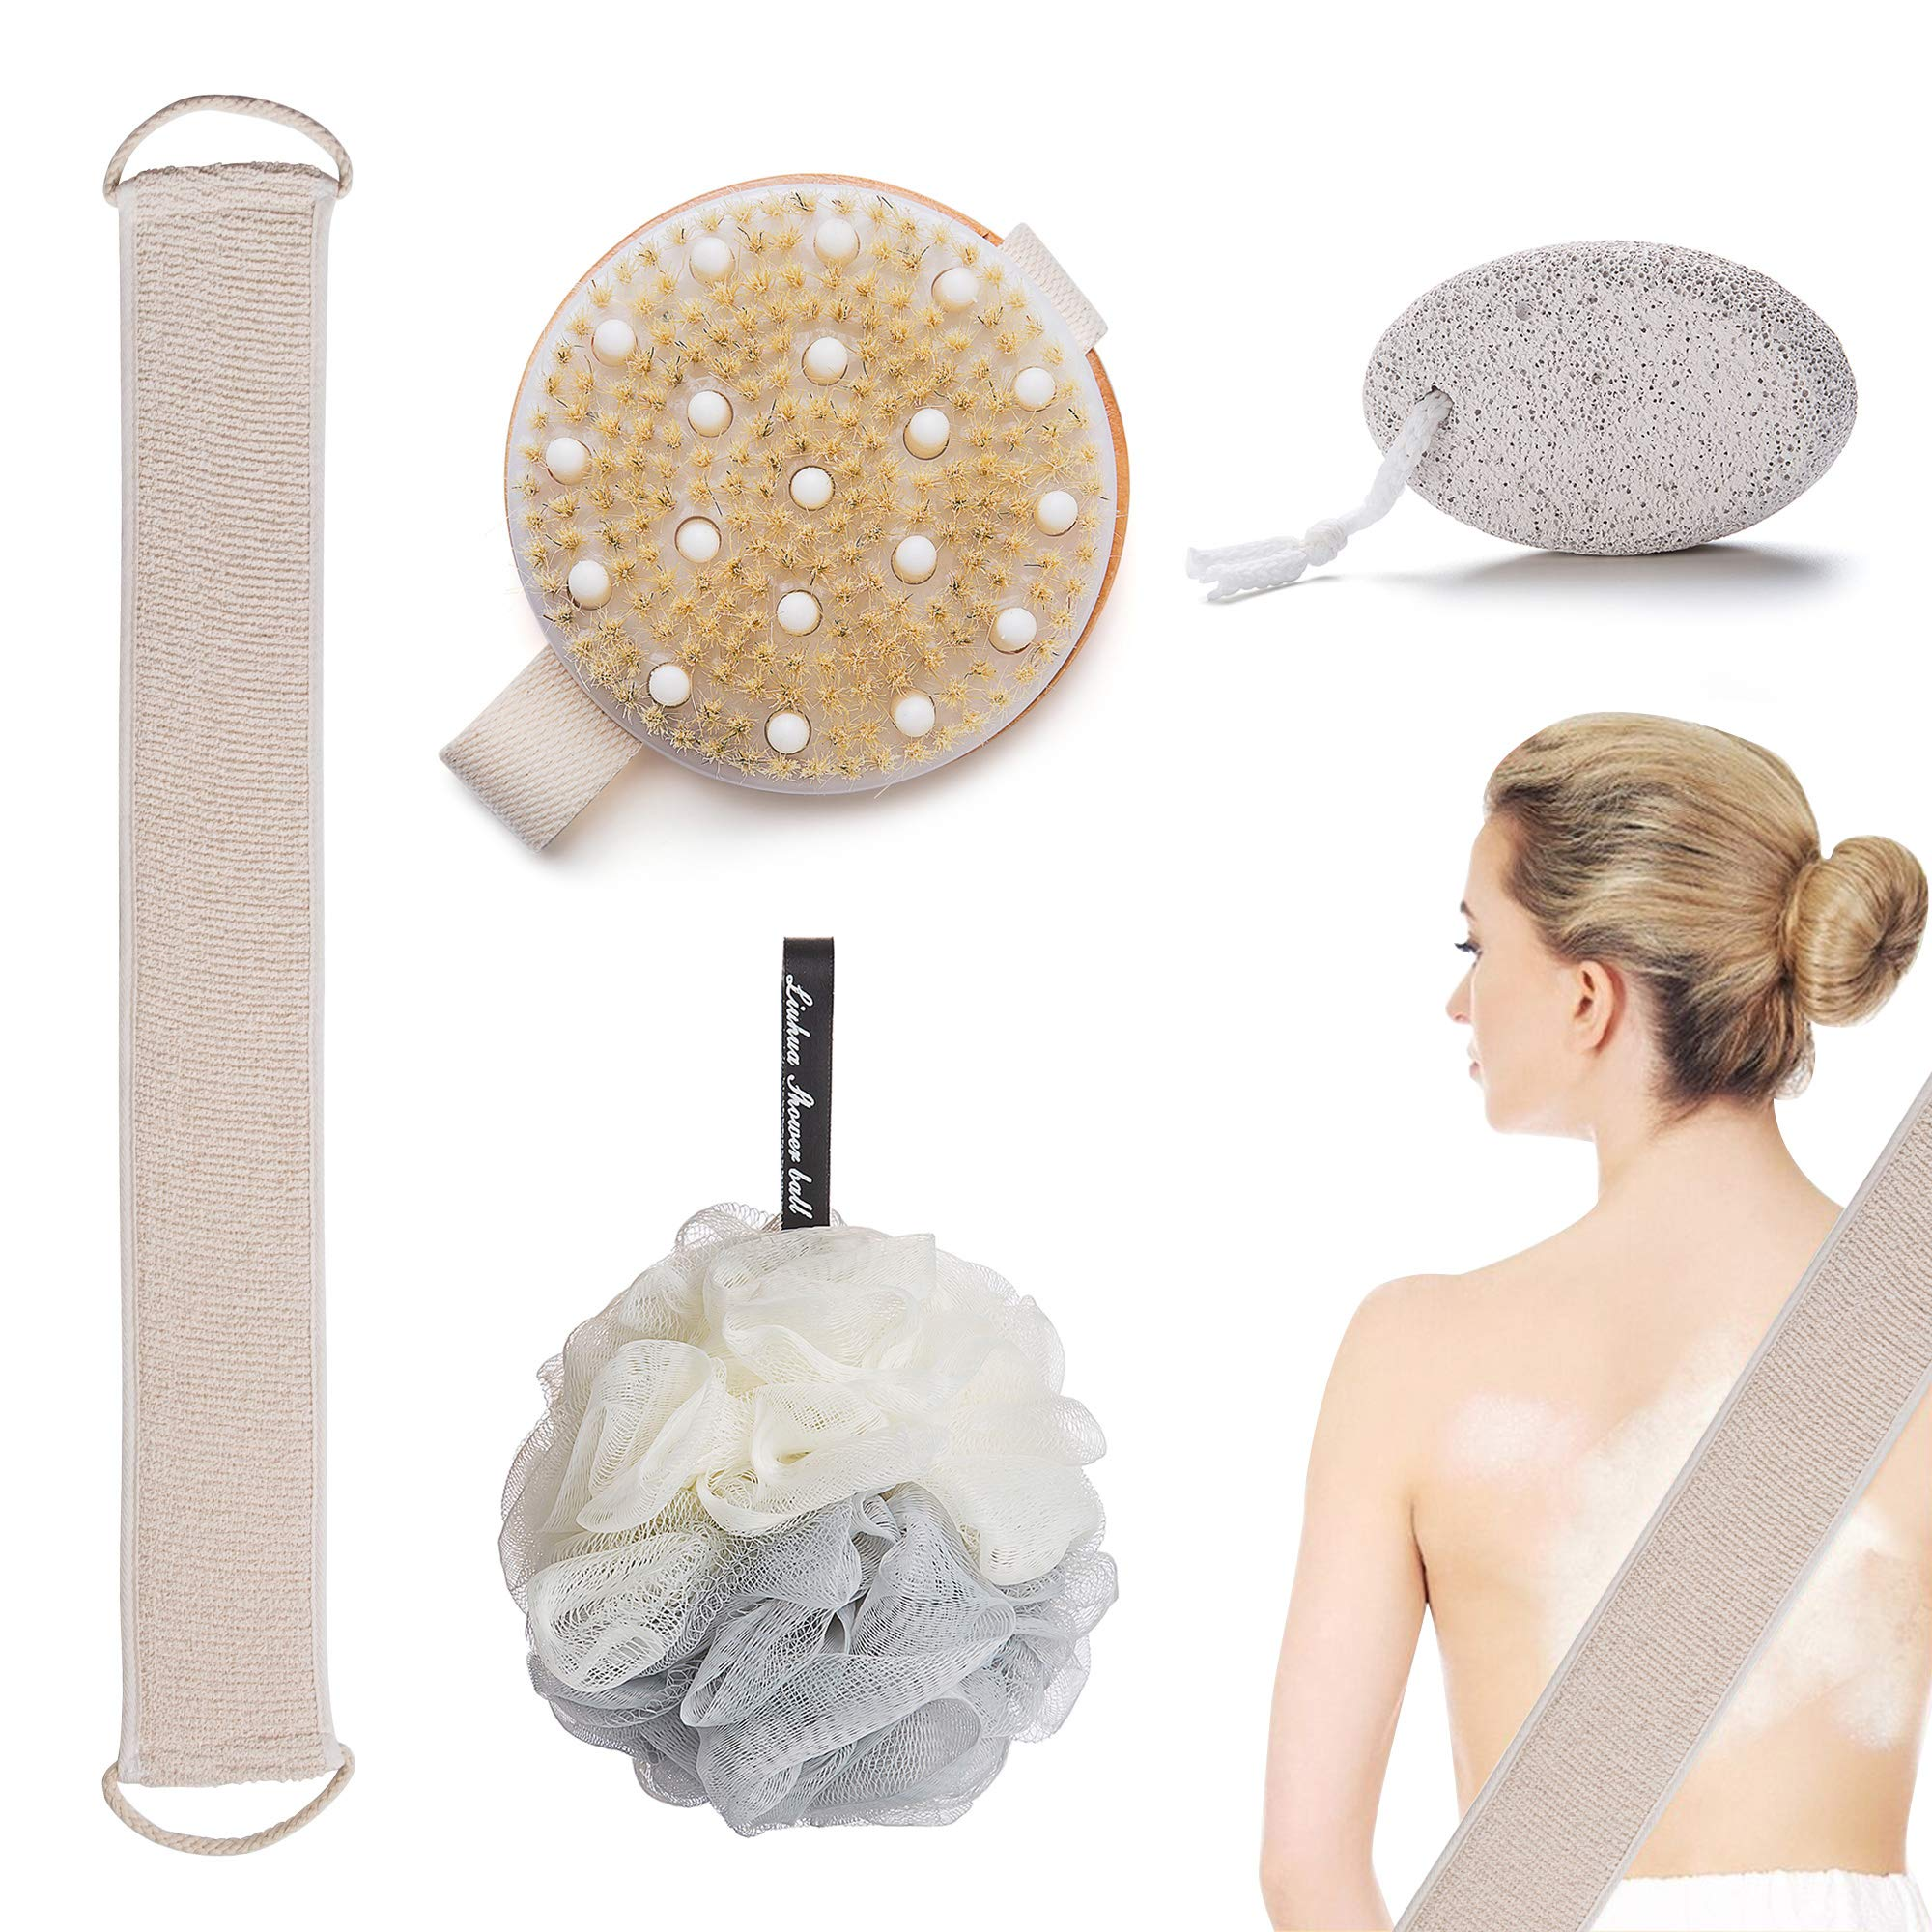 4 Pcs Bath Set Back Scrubber for Shower Pumice Stone for Feet